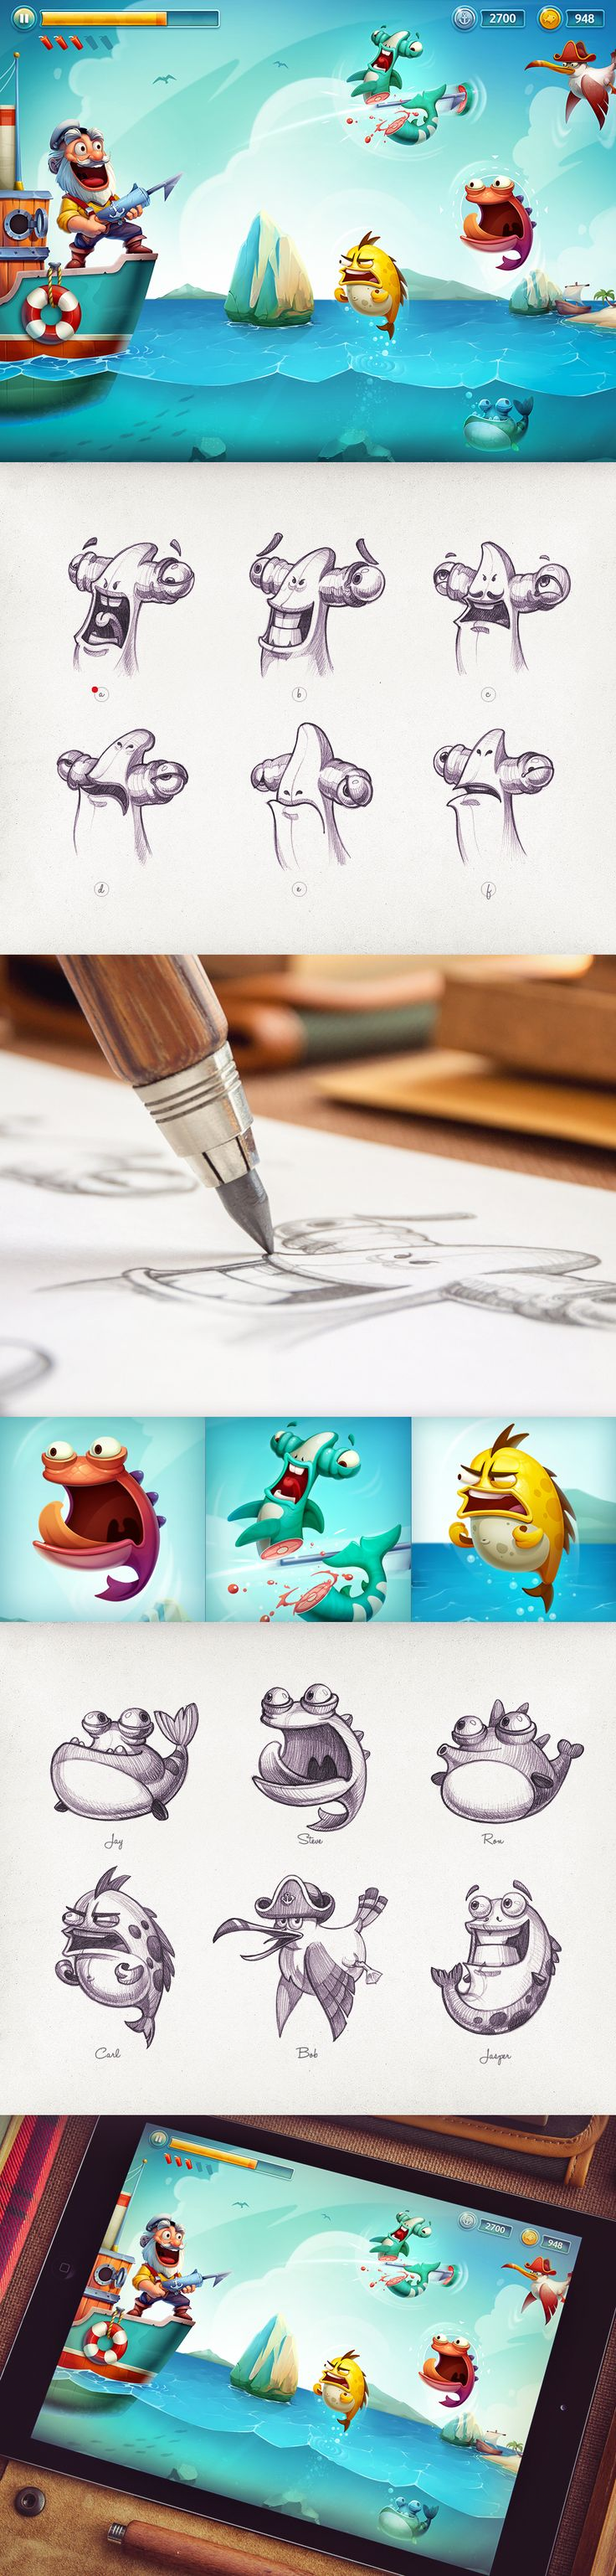 Ios game character design